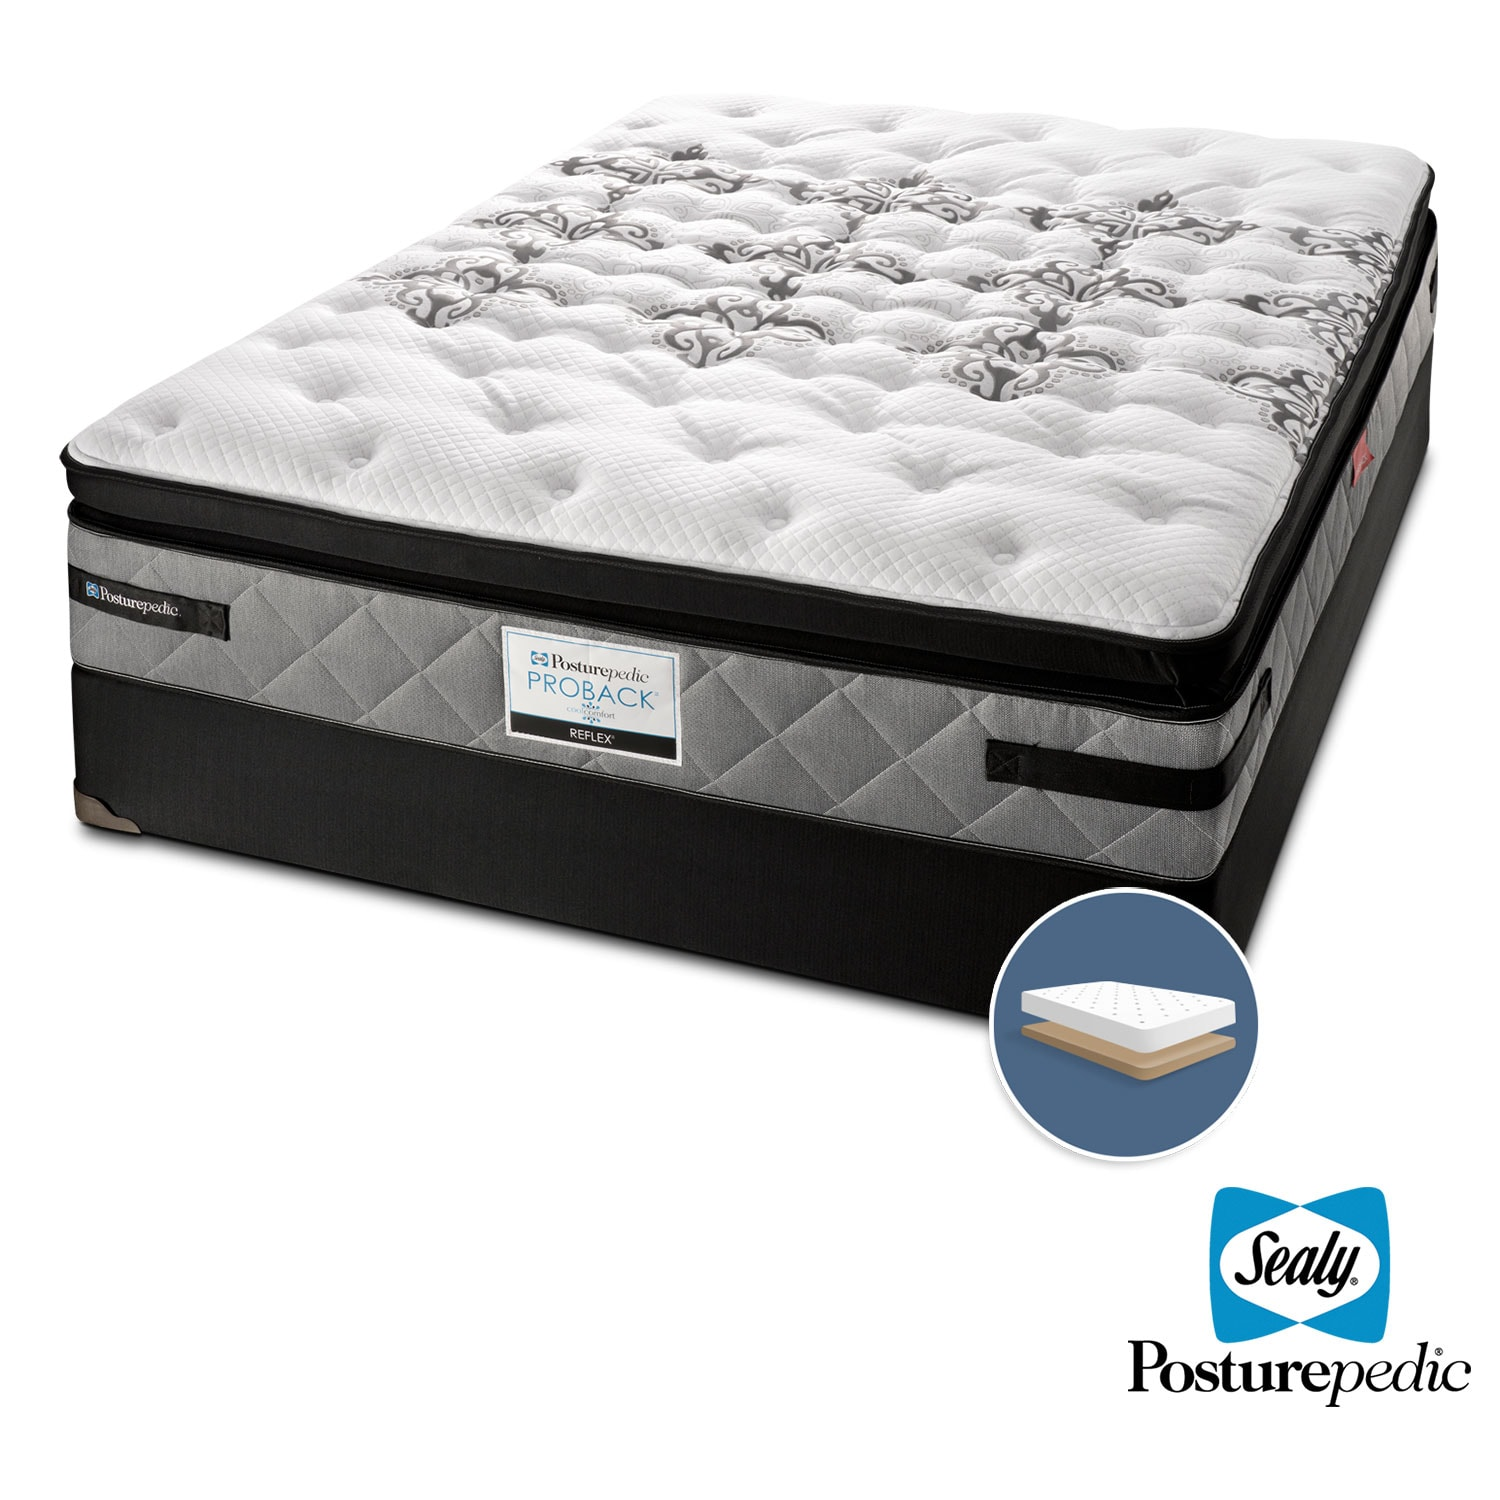 Mattresses and Bedding - Sealy Myth Firm Queen Mattress and Low-Profile Boxspring Set